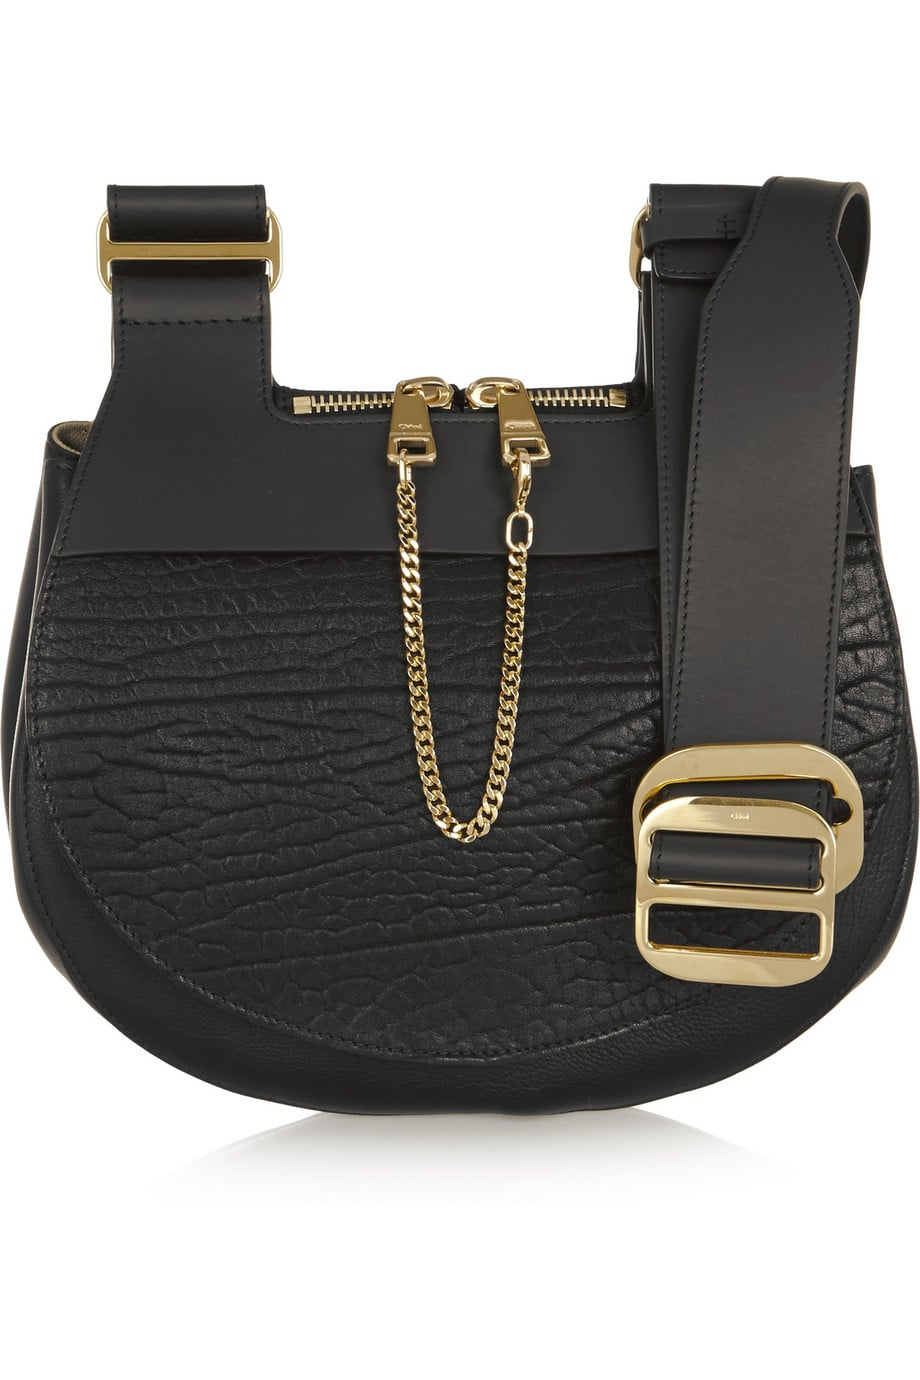 chloe replicas - Chloe Drew Shoulder Bag Reference Guide | Spotted Fashion